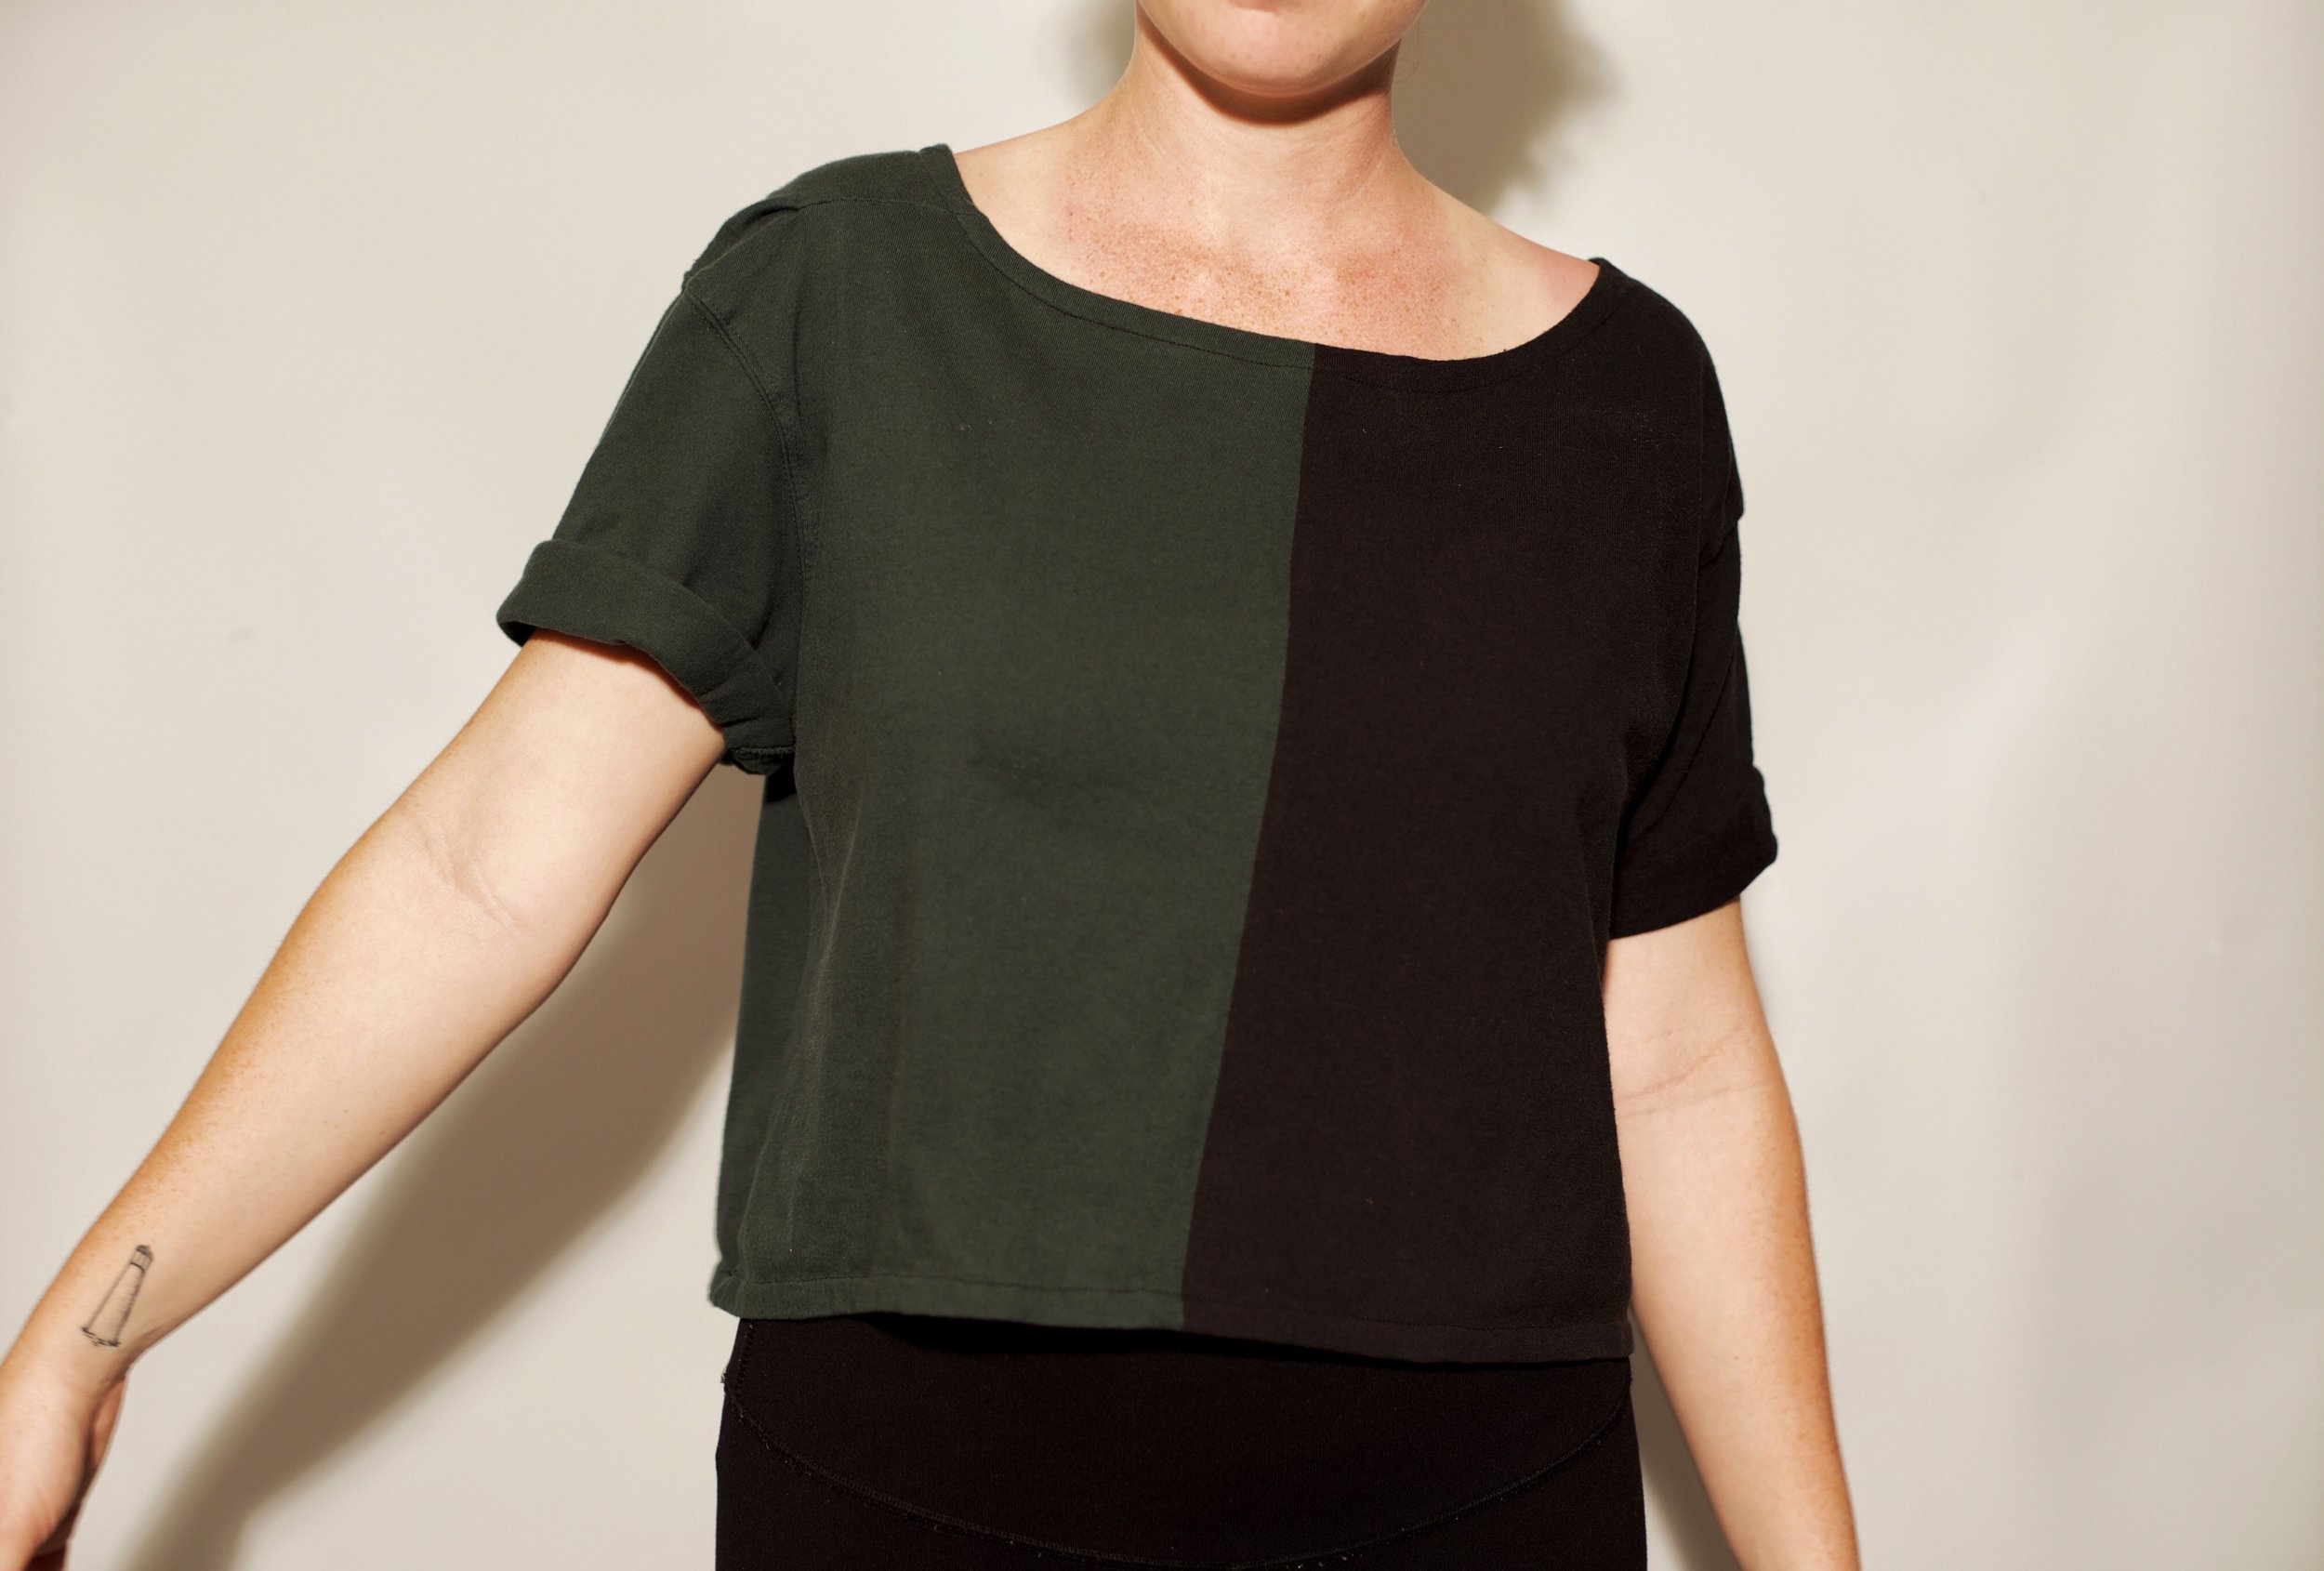 Vintage t-shirts combined to make one cropped shirt